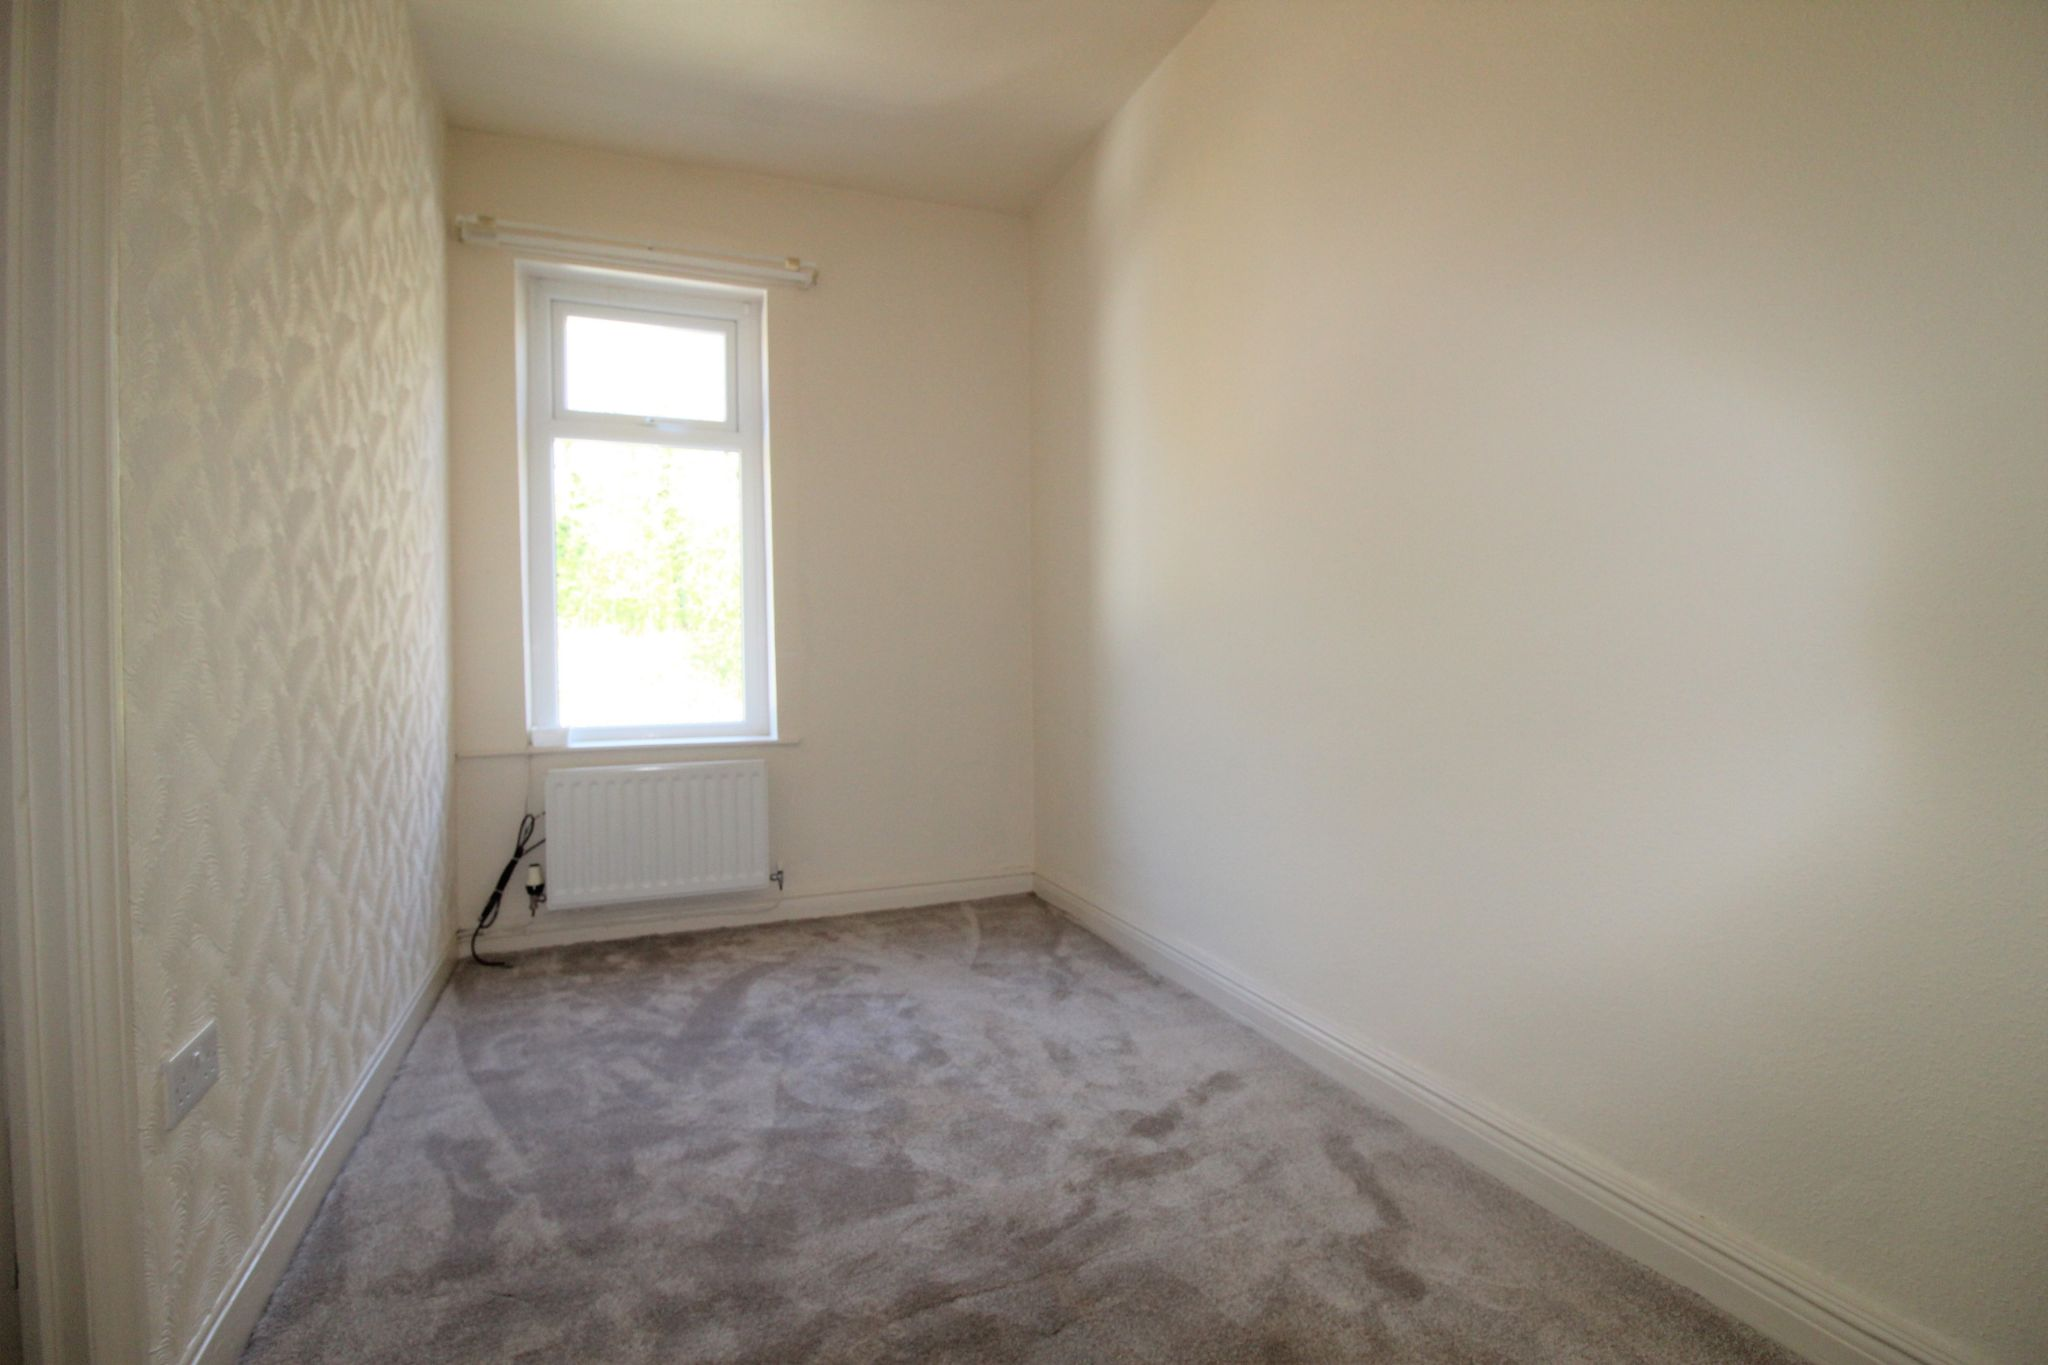 2 bedroom mid terraced house SSTC in Brighouse - Photograph 16